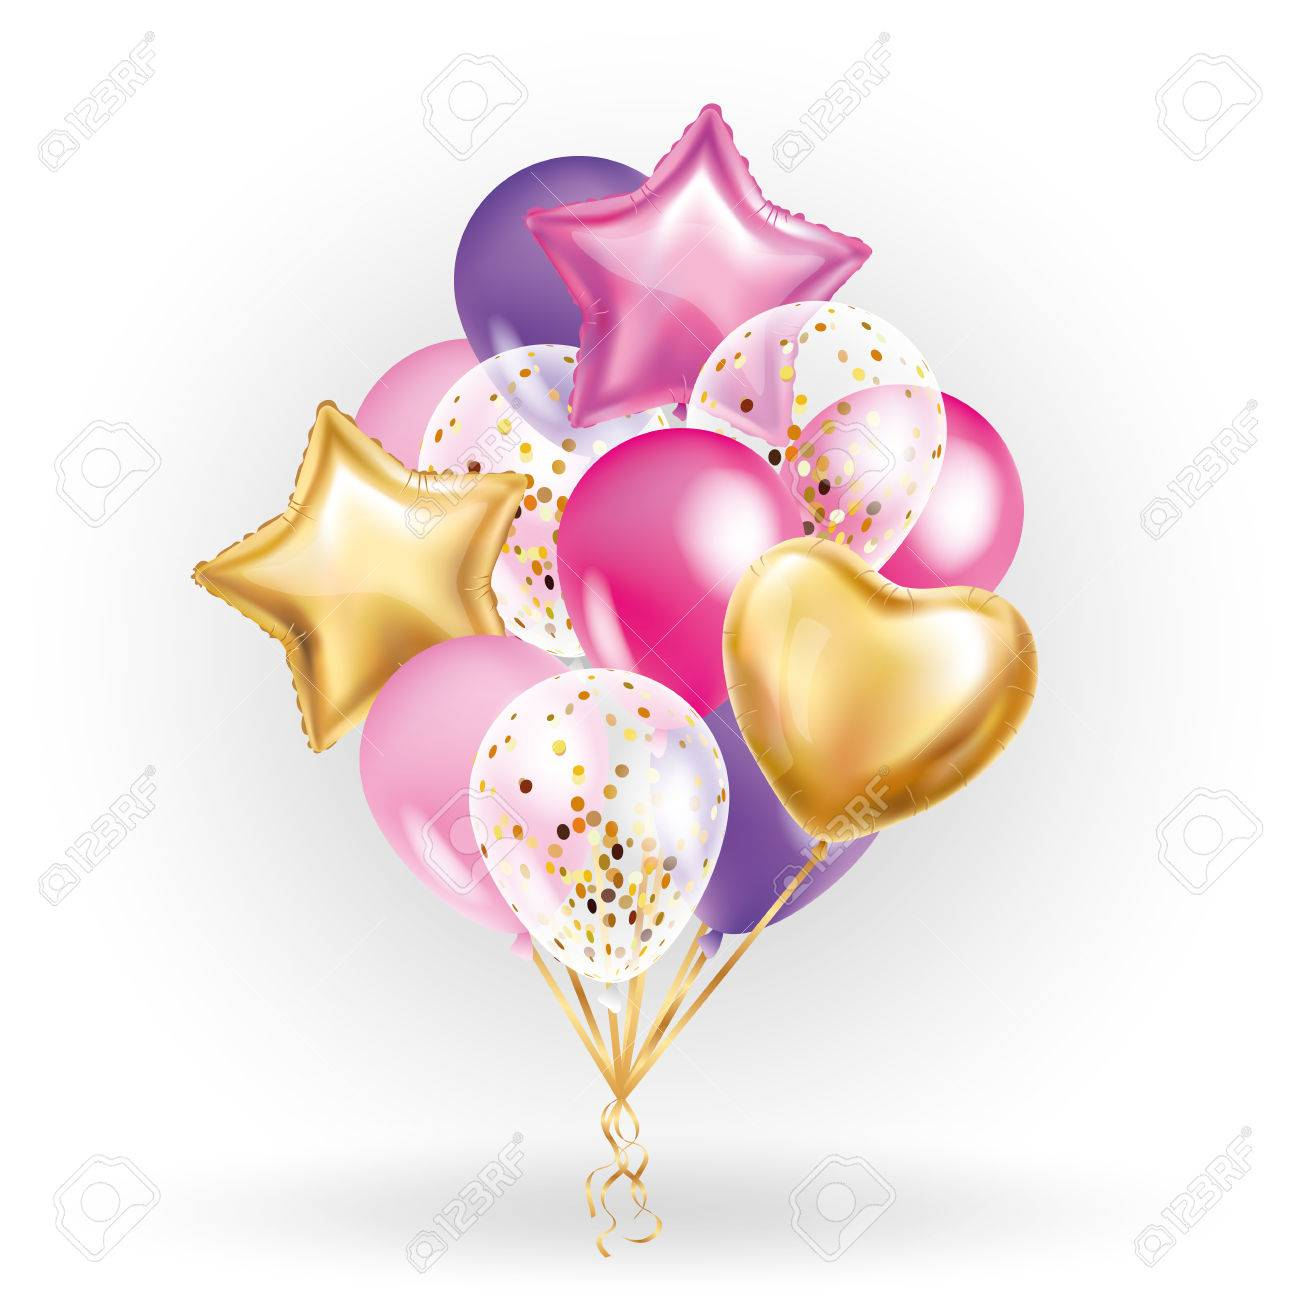 Heart star Gold balloon Bouquet. Frosted party balloons event design. Balloons isolated in the air. Party decorations for wedding, birthday, celebration, love, valentines, kids. Color transparent balloon - 72632091